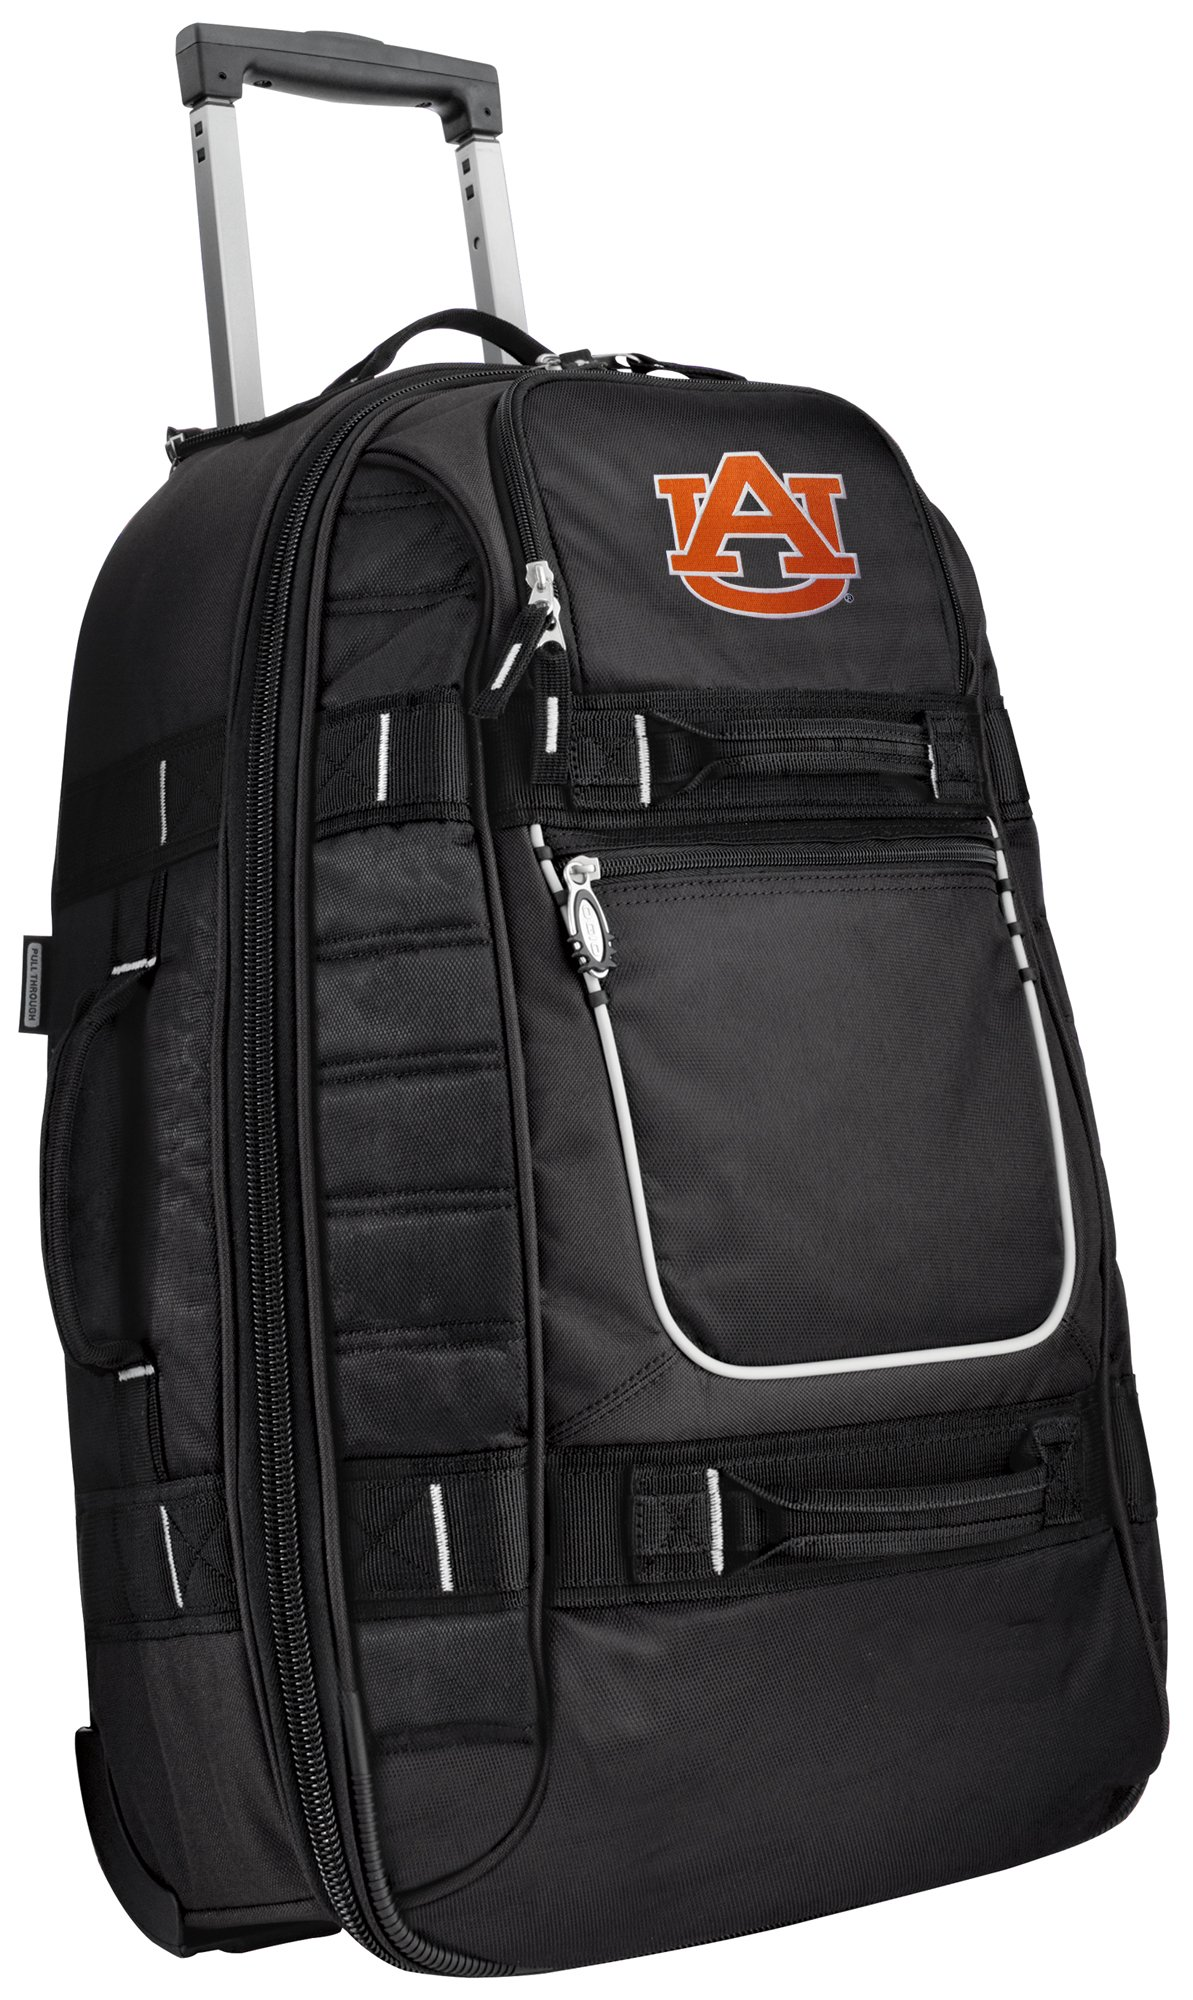 Small Auburn Carry-On Bag Wheeled Suitcase Luggage Bags